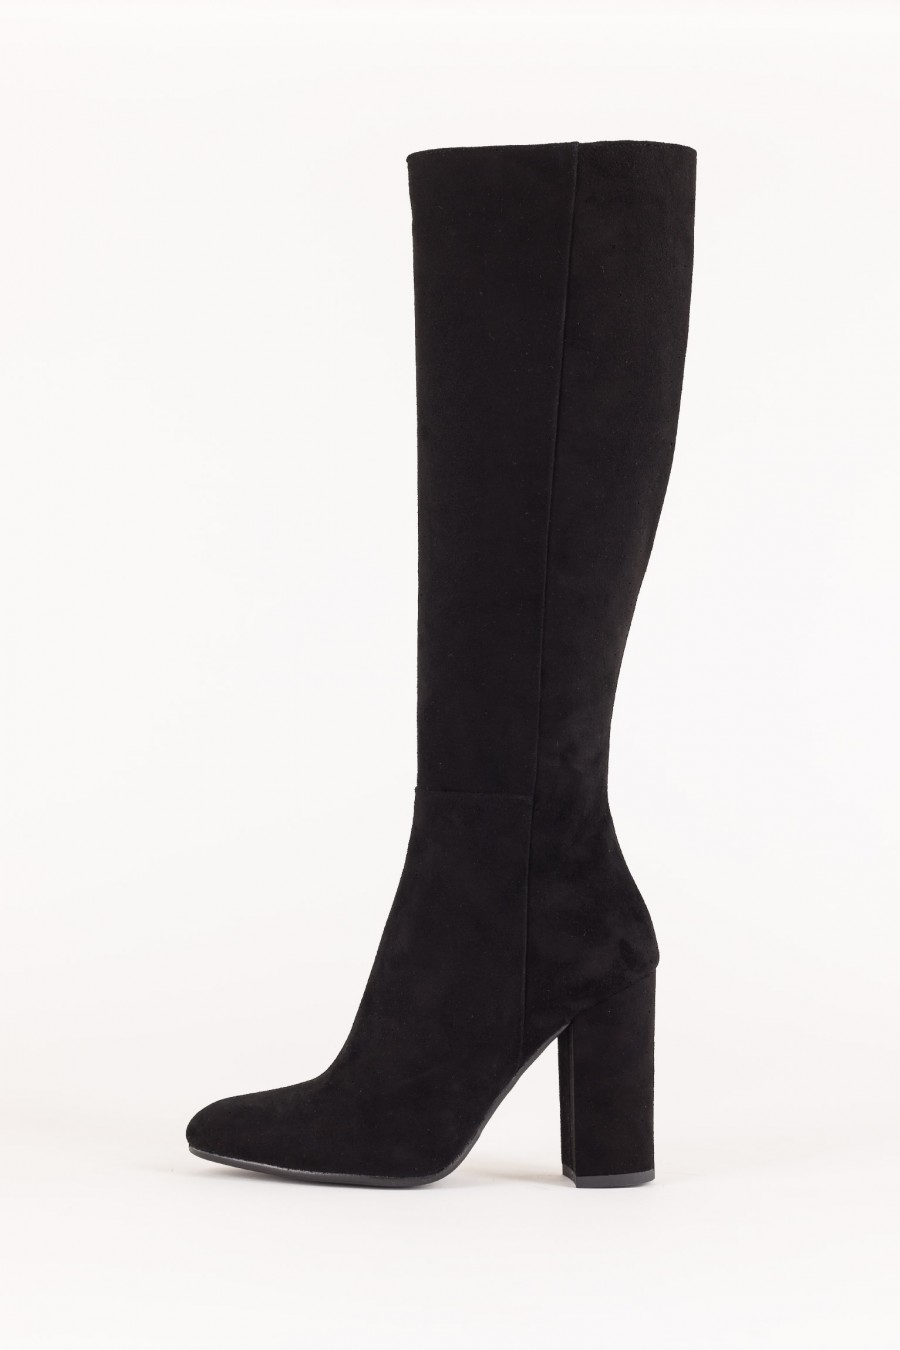 Black suede boots with high heels